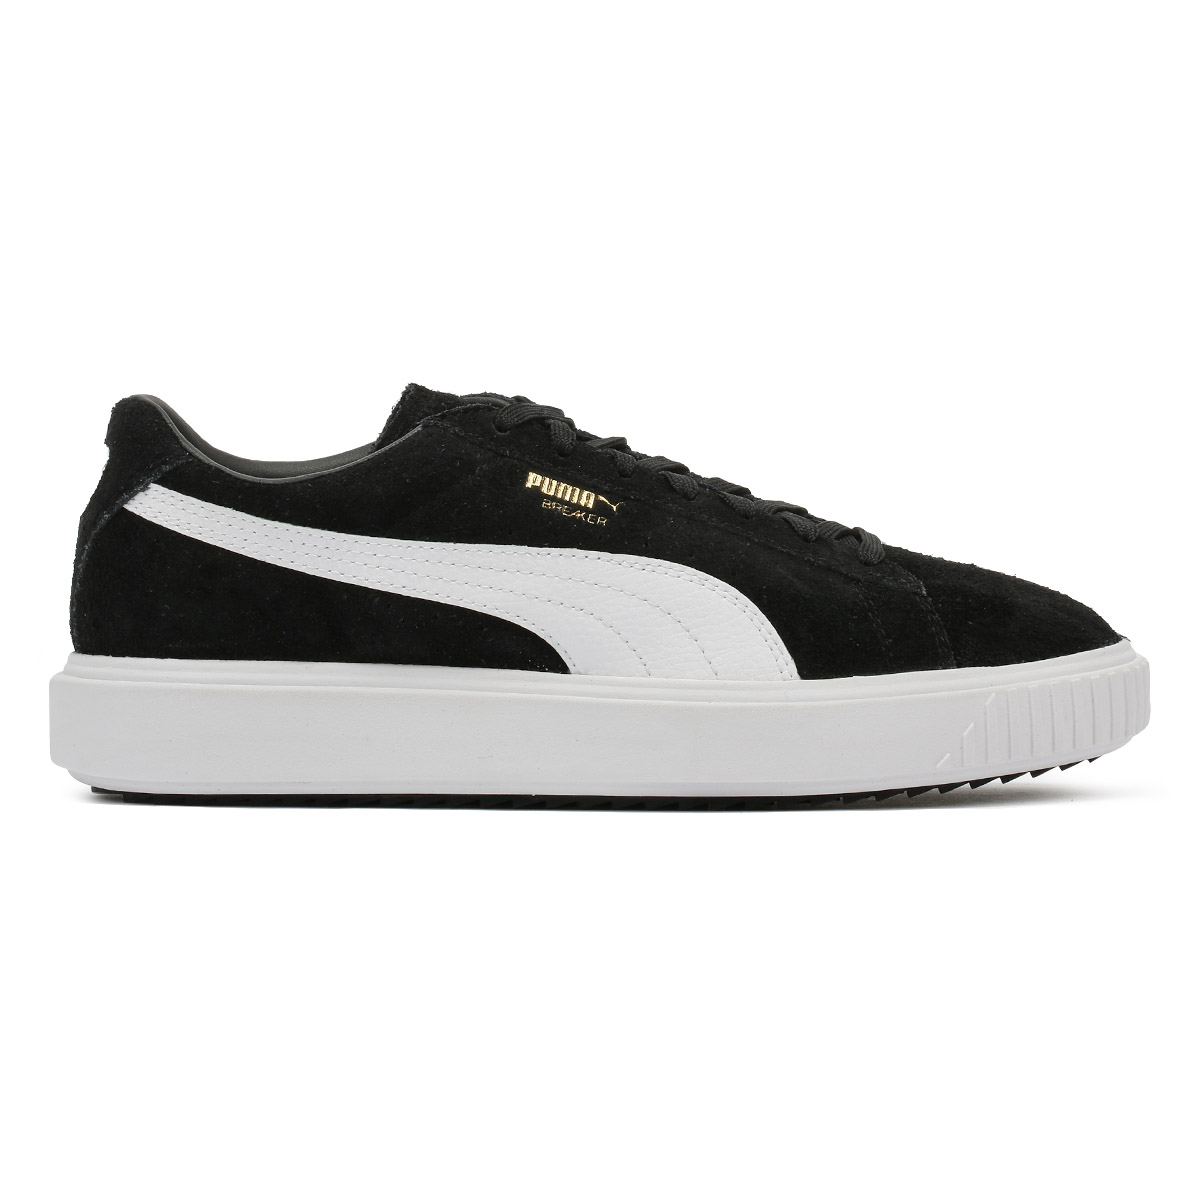 PUMA Mens Trainers schwarz Casual Breaker Suede Lace Up Sport Casual schwarz Schuhes 37dbef